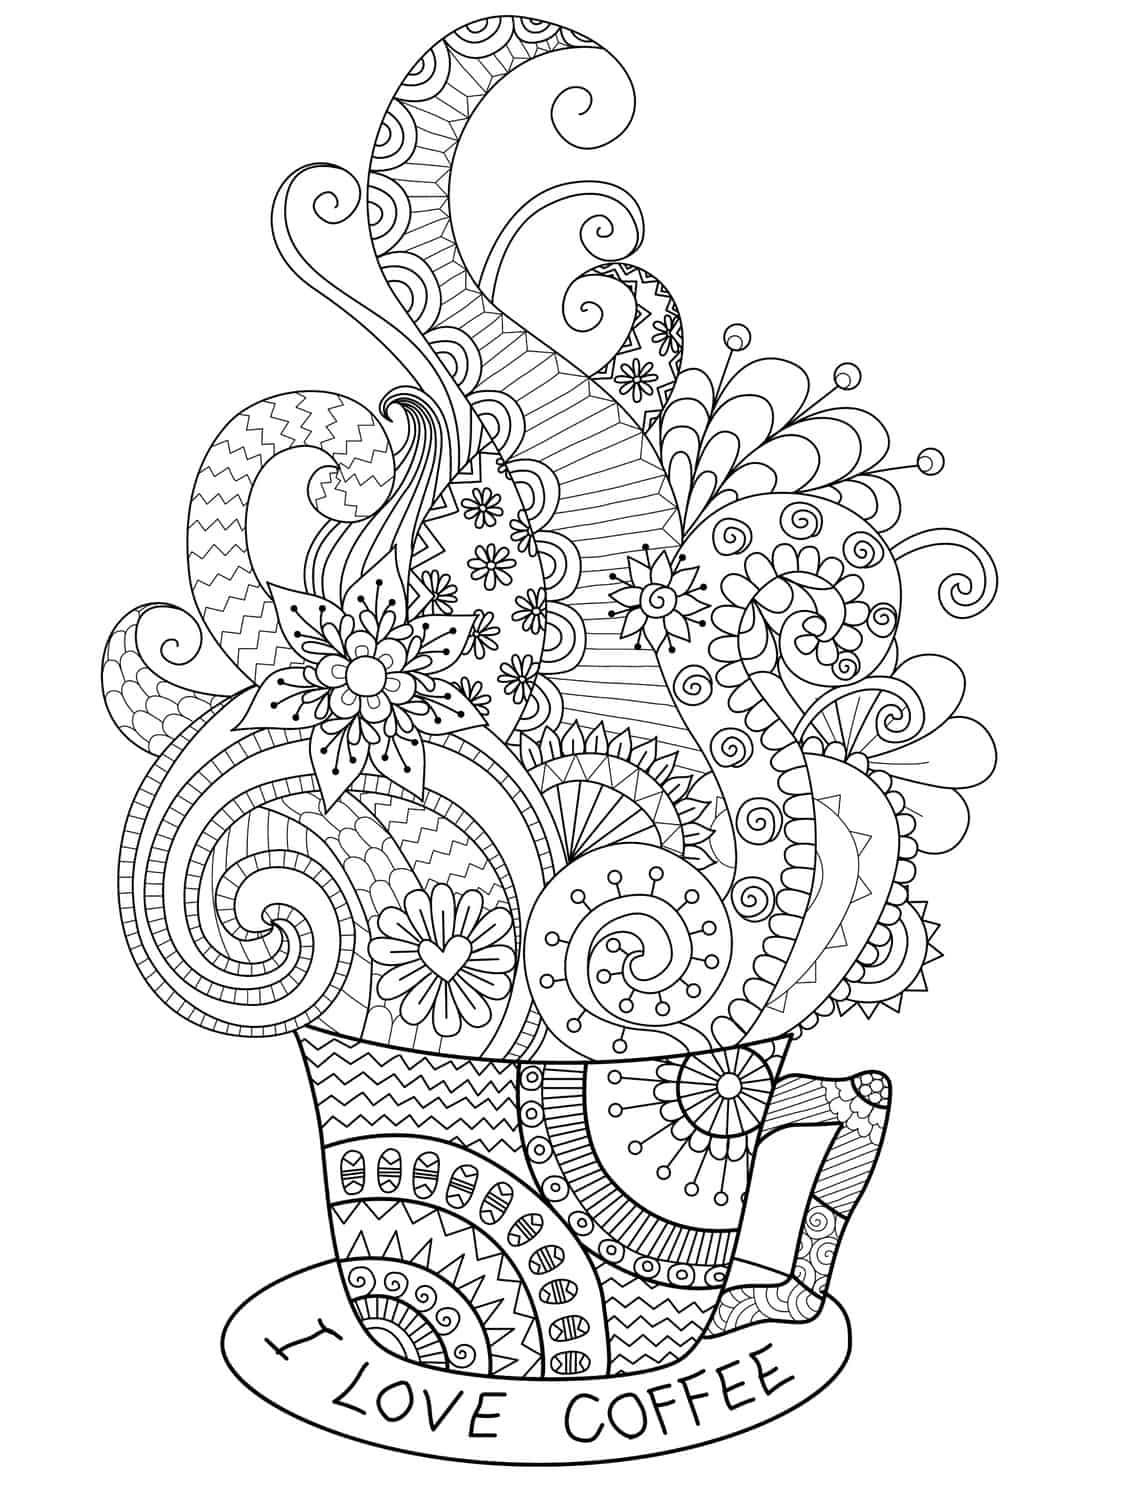 20 Gorgeous Free Printable Adult Coloring Pages Page 10 of 22